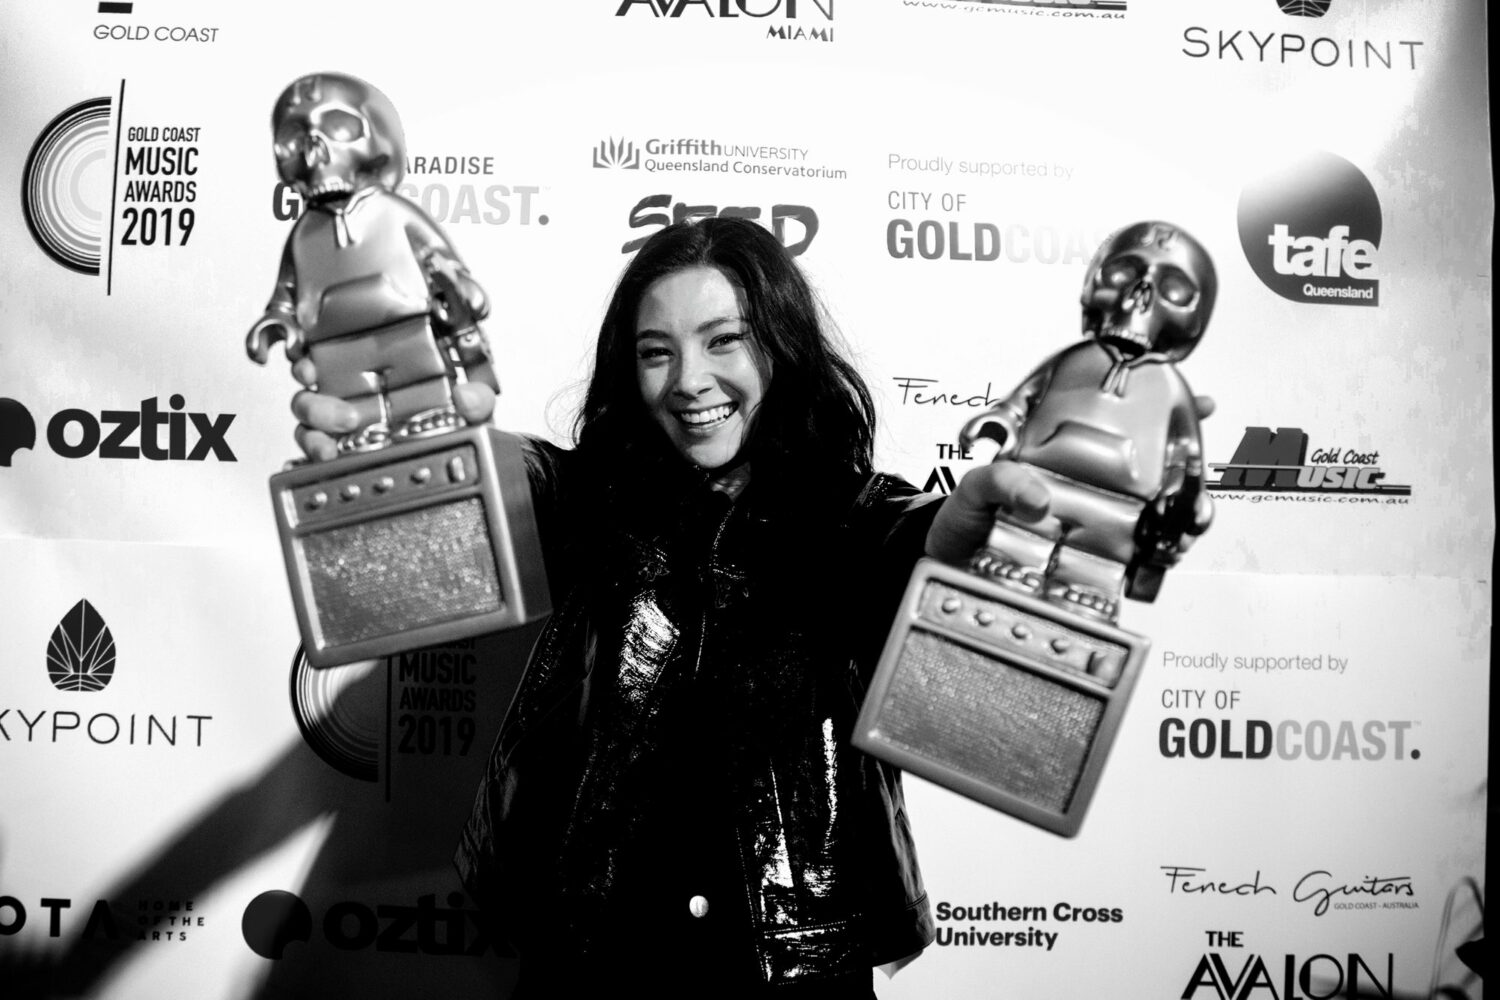 Nominations are open for the Gold Coast Music Awards